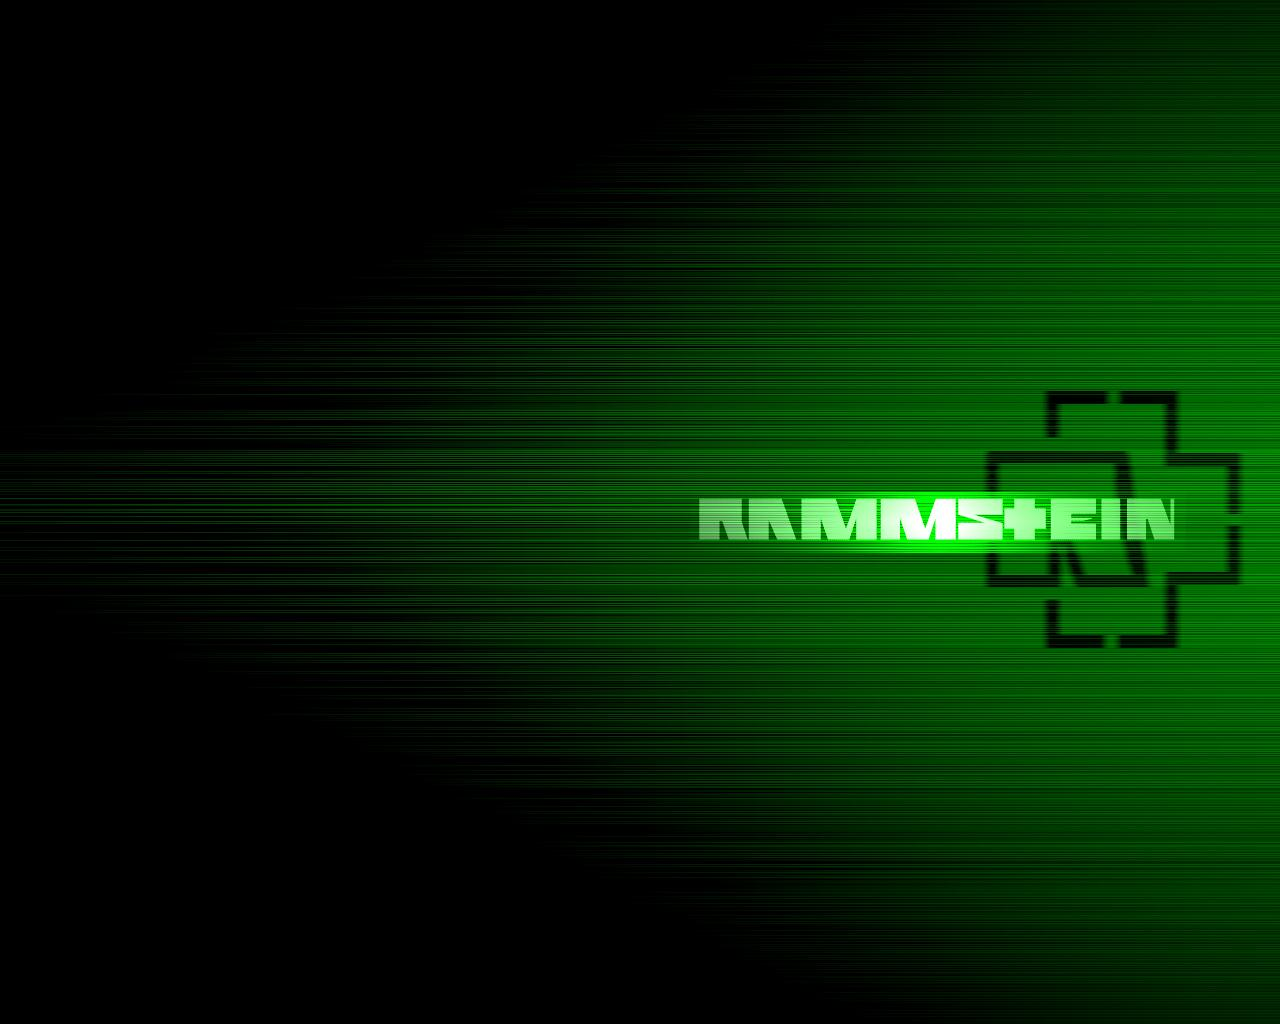 Rammstein Wallpapers and Backgrounds Image